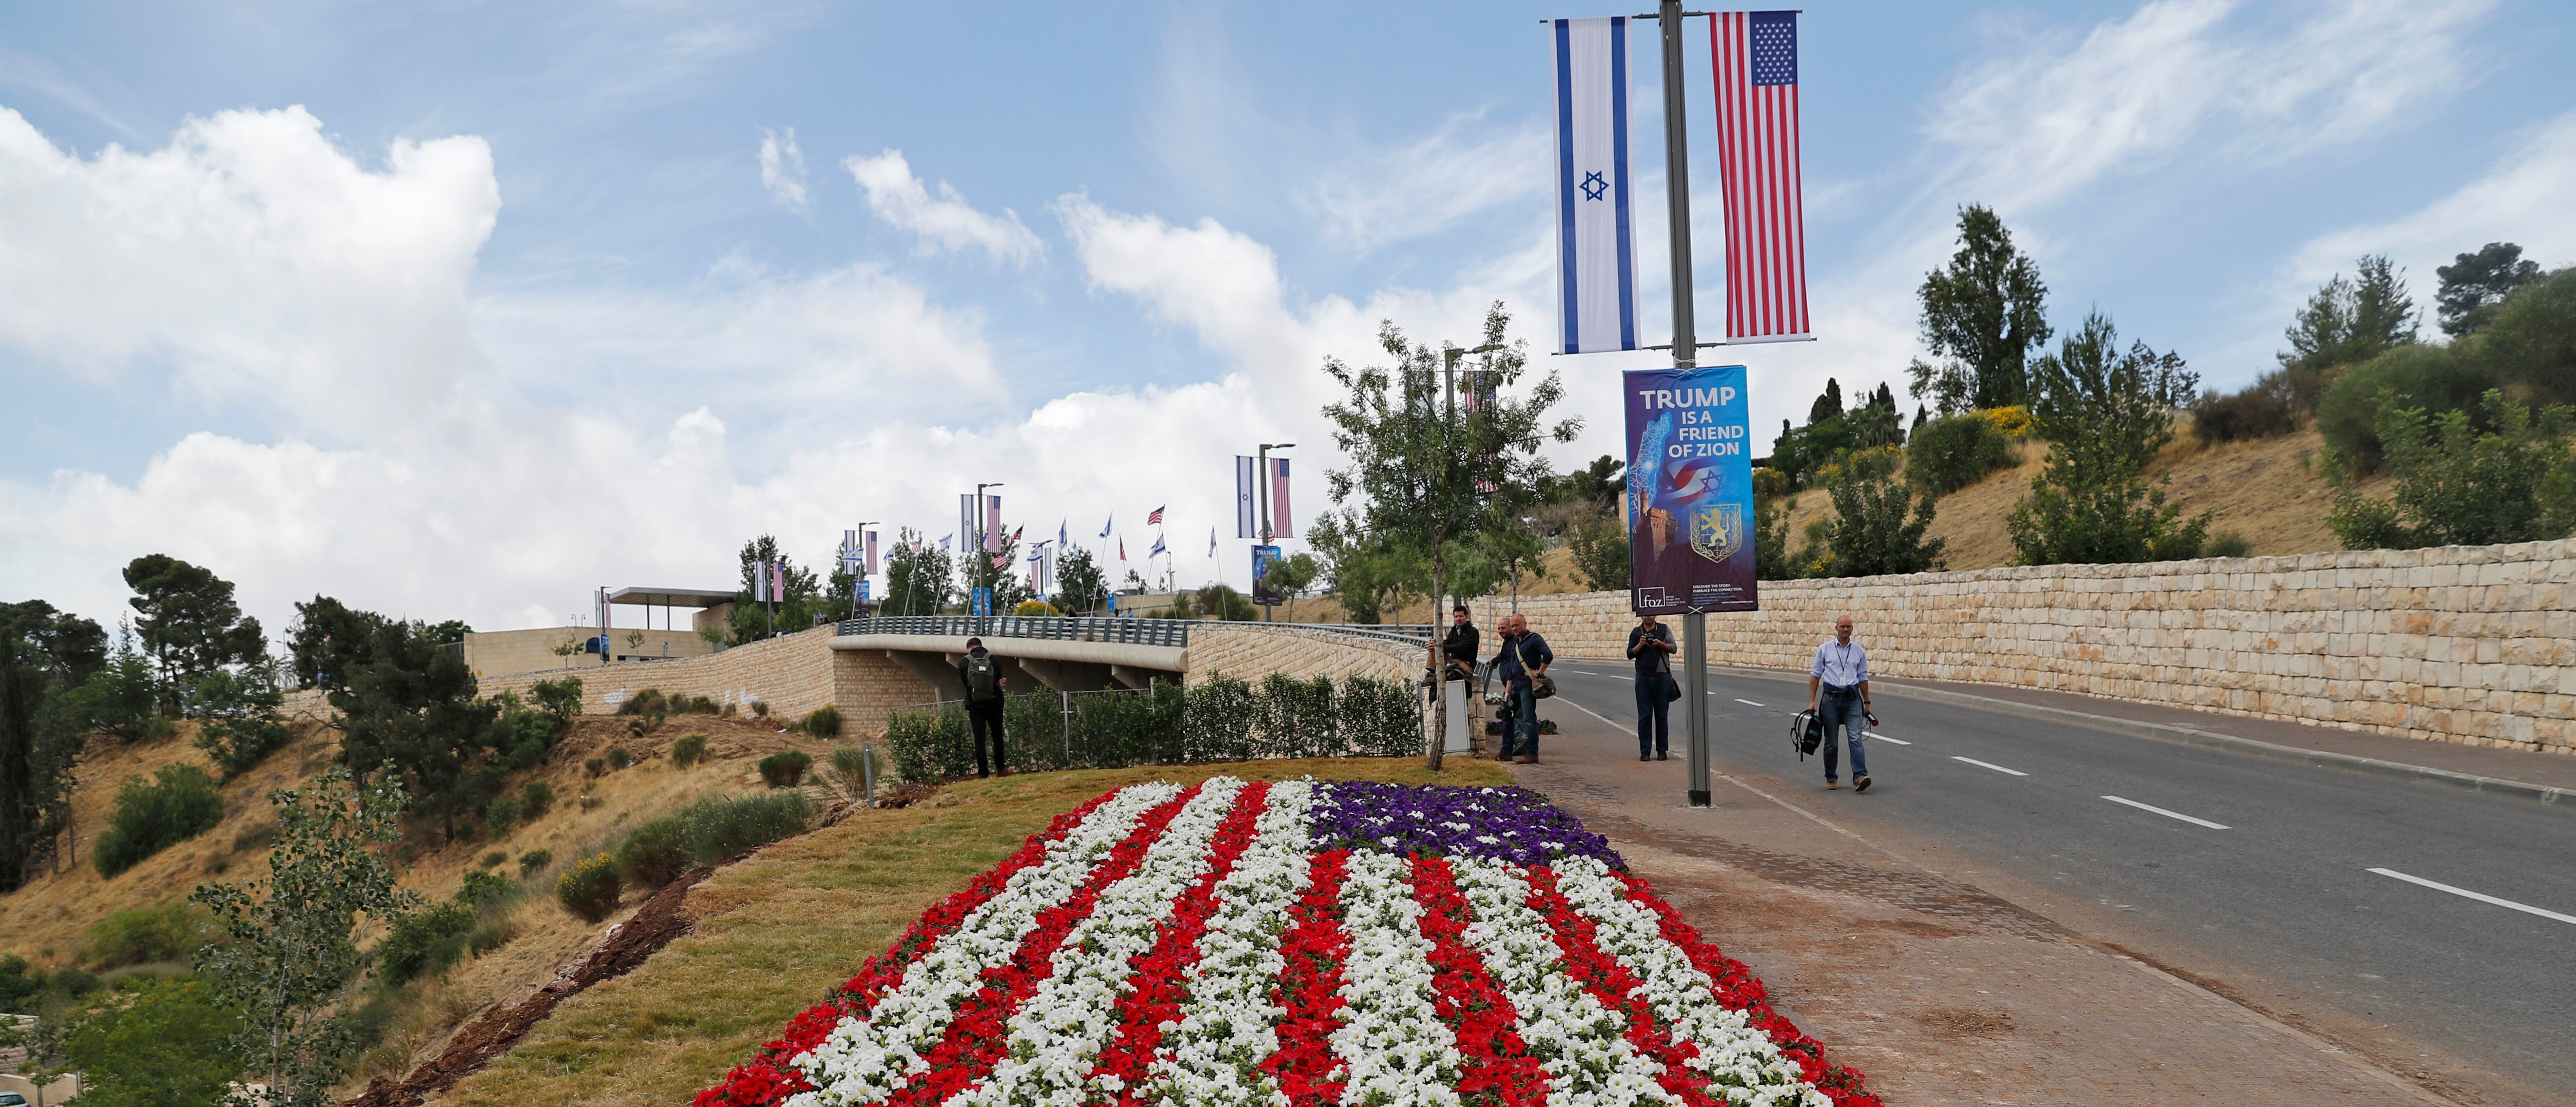 Journalists gather on May 13, 2018, near the compound of the US consulate in Jerusalem, which will host the new US embassy, as posters praising the US president hang in the street. (Photo by Ahmad GHARABLI / AFP) (Photo credit should read AHMAD GHARABLI/AFP/Getty Images)